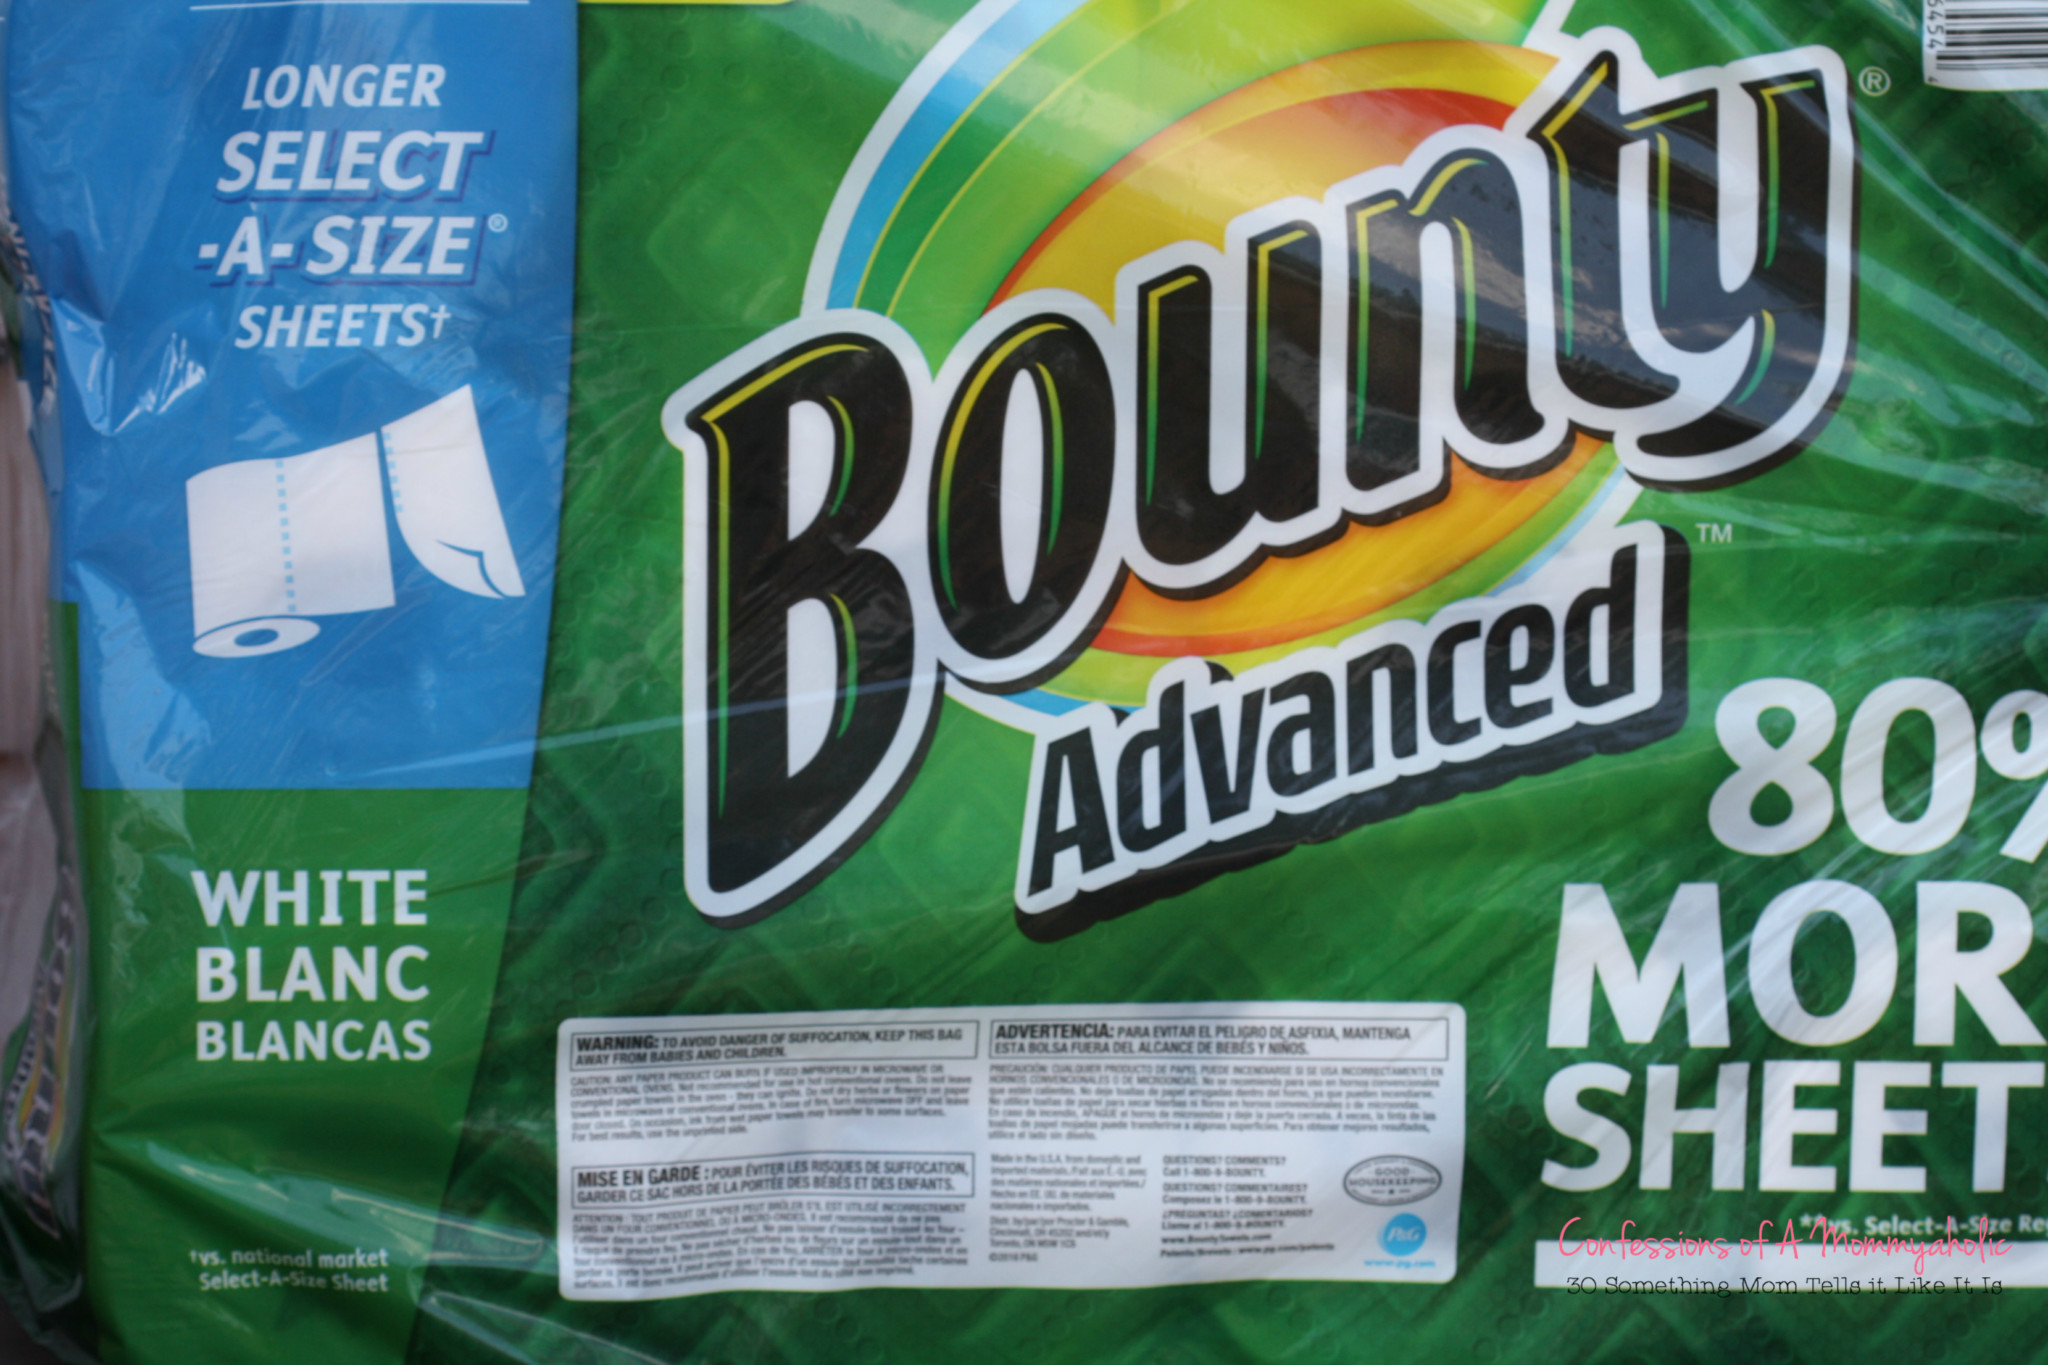 Bounty Advanced